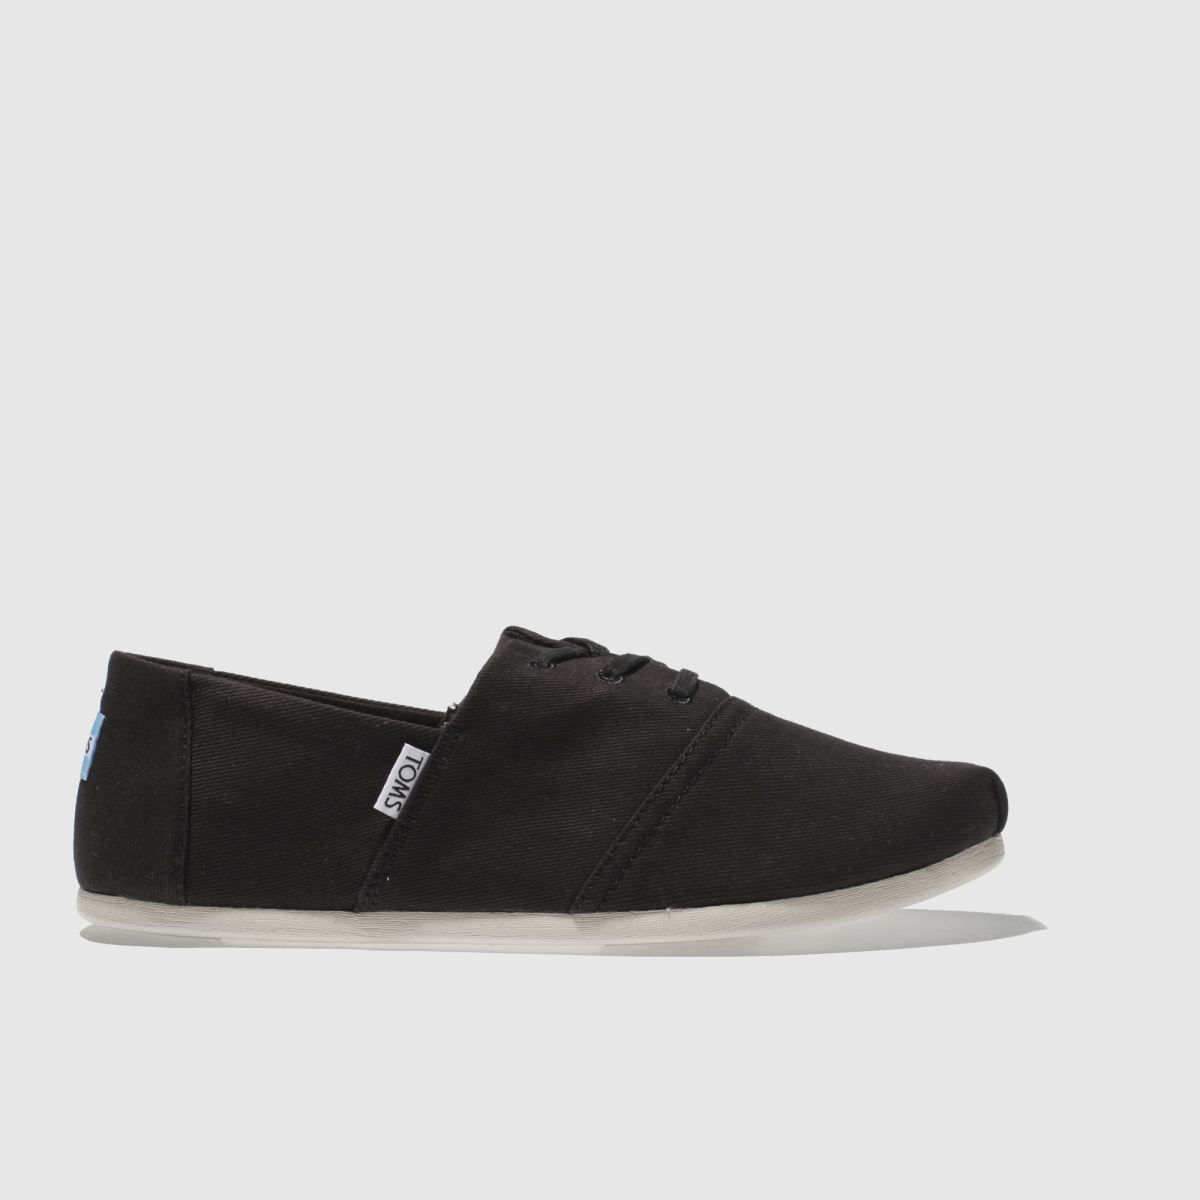 Toms Black Hermosa Shoes